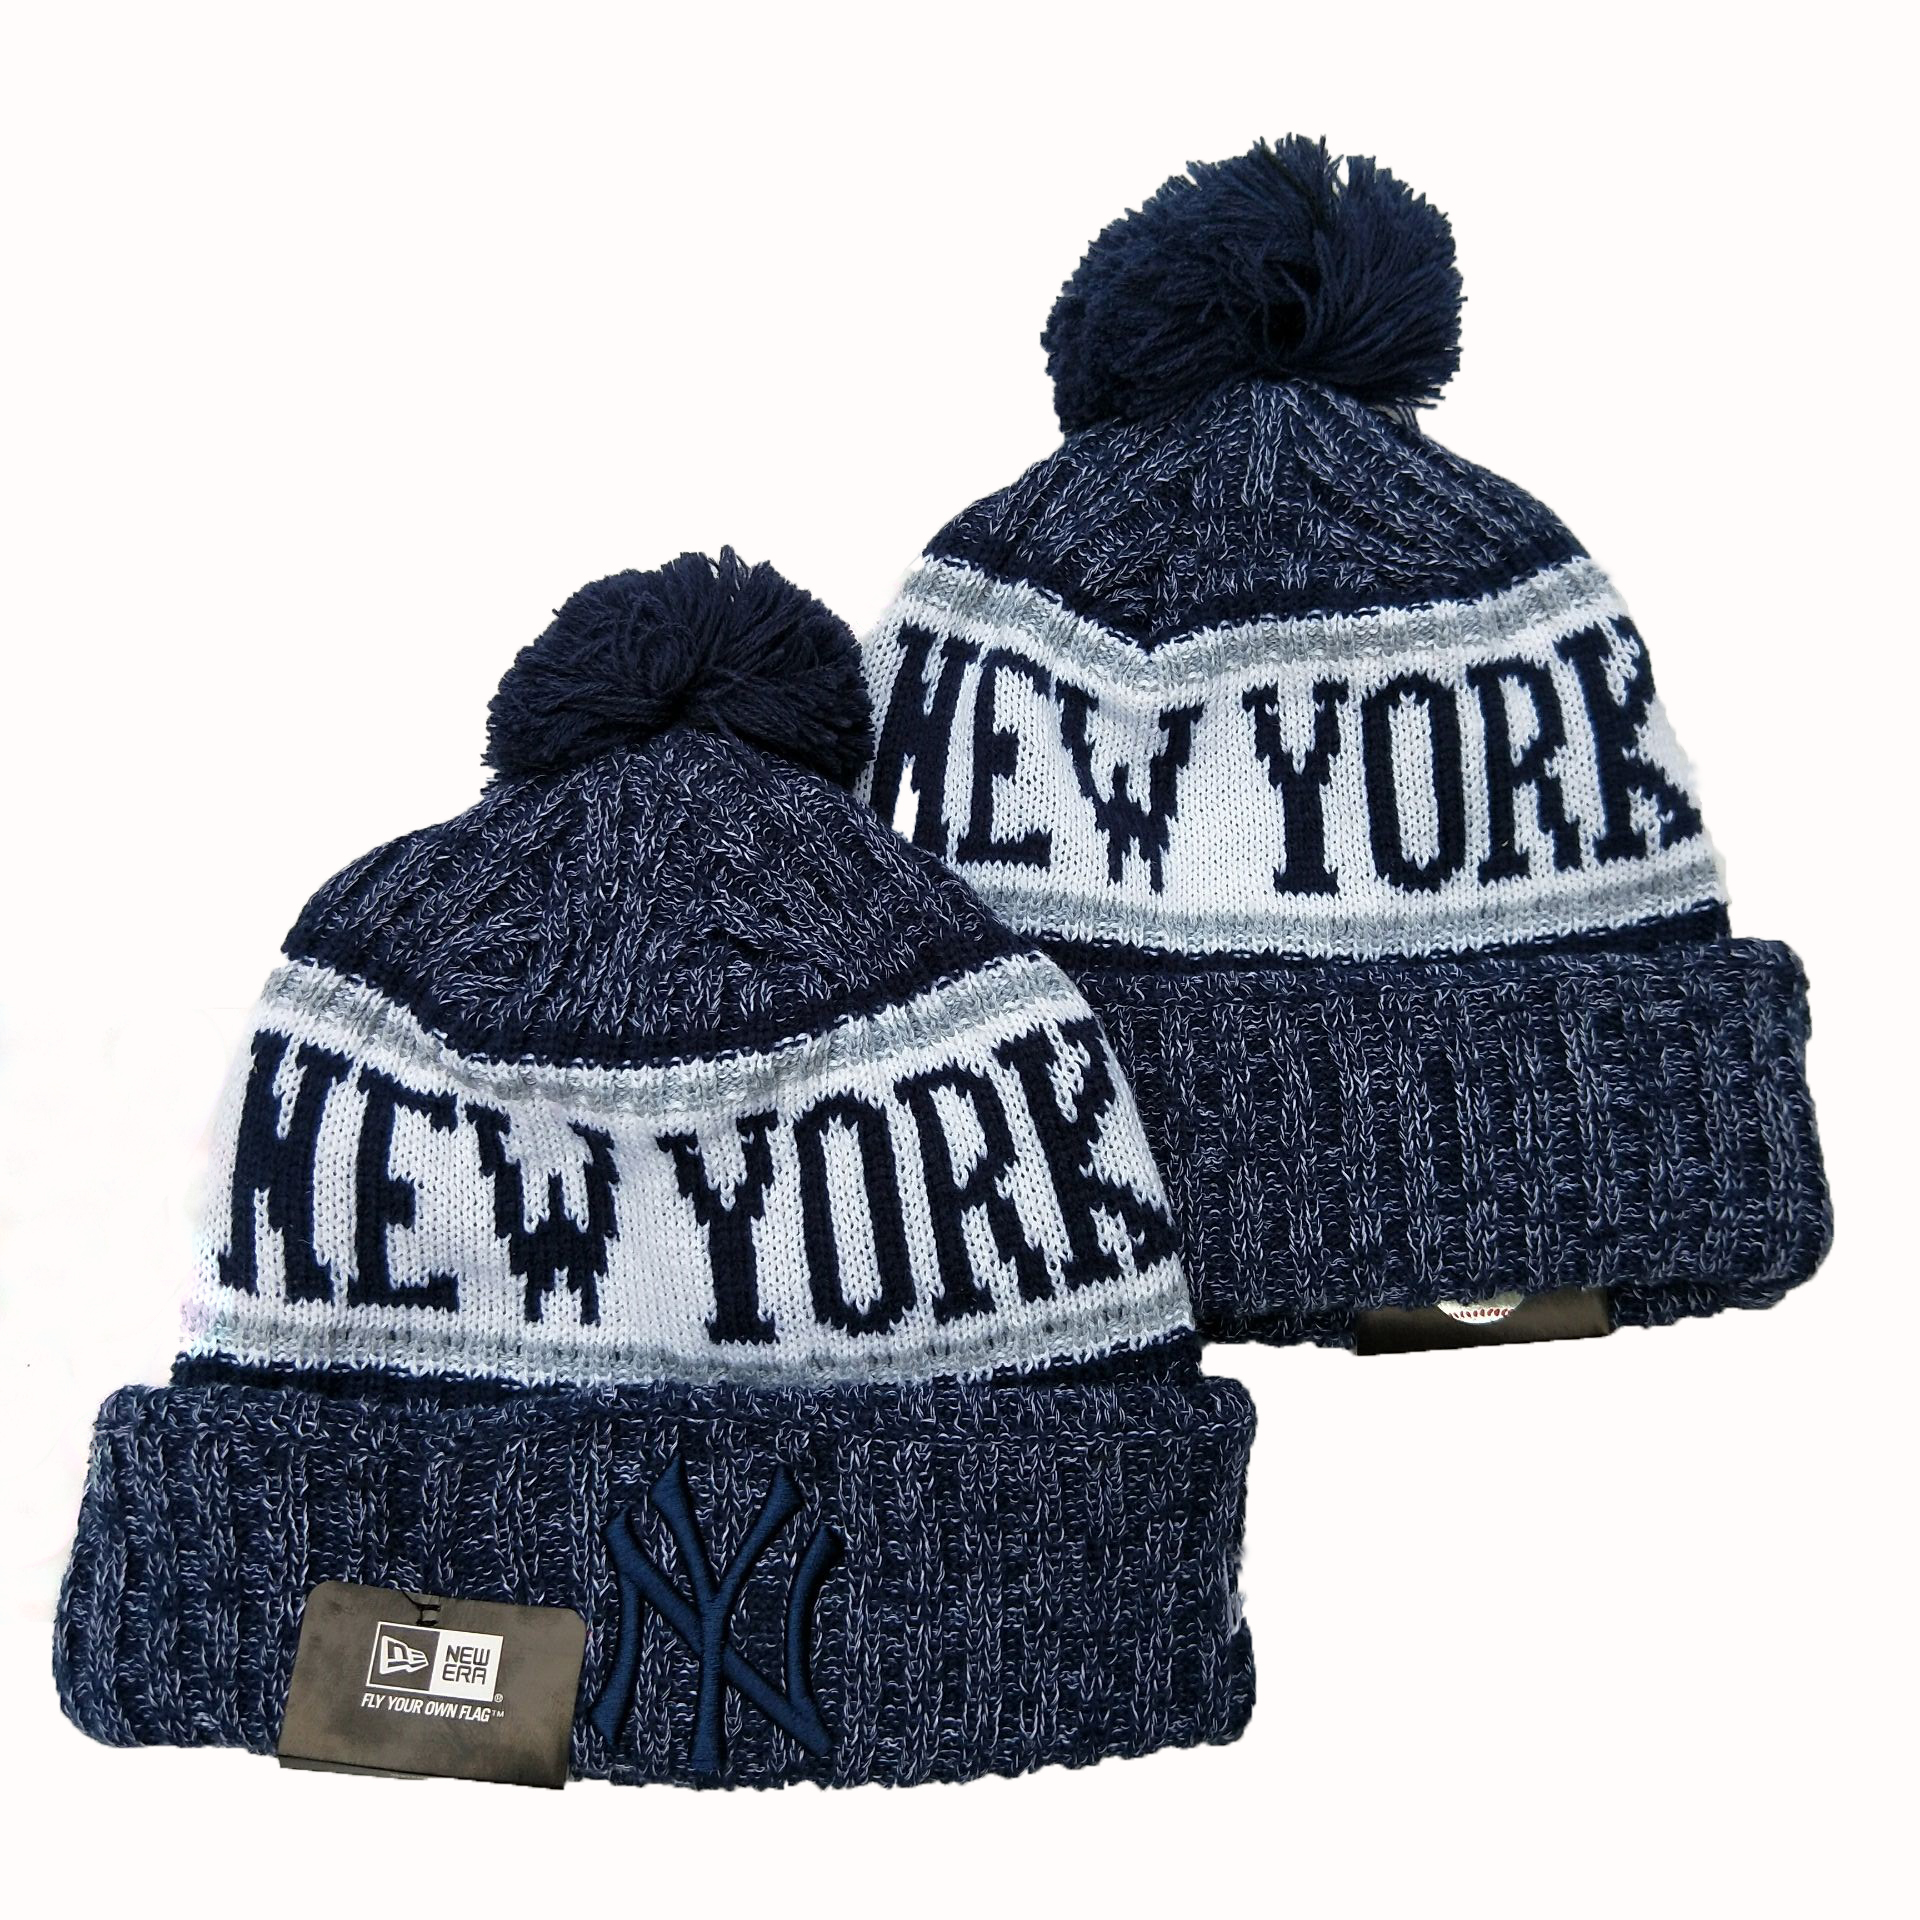 New York Yankees Team Logo Navy Cuffed Pom Knit Hat YD